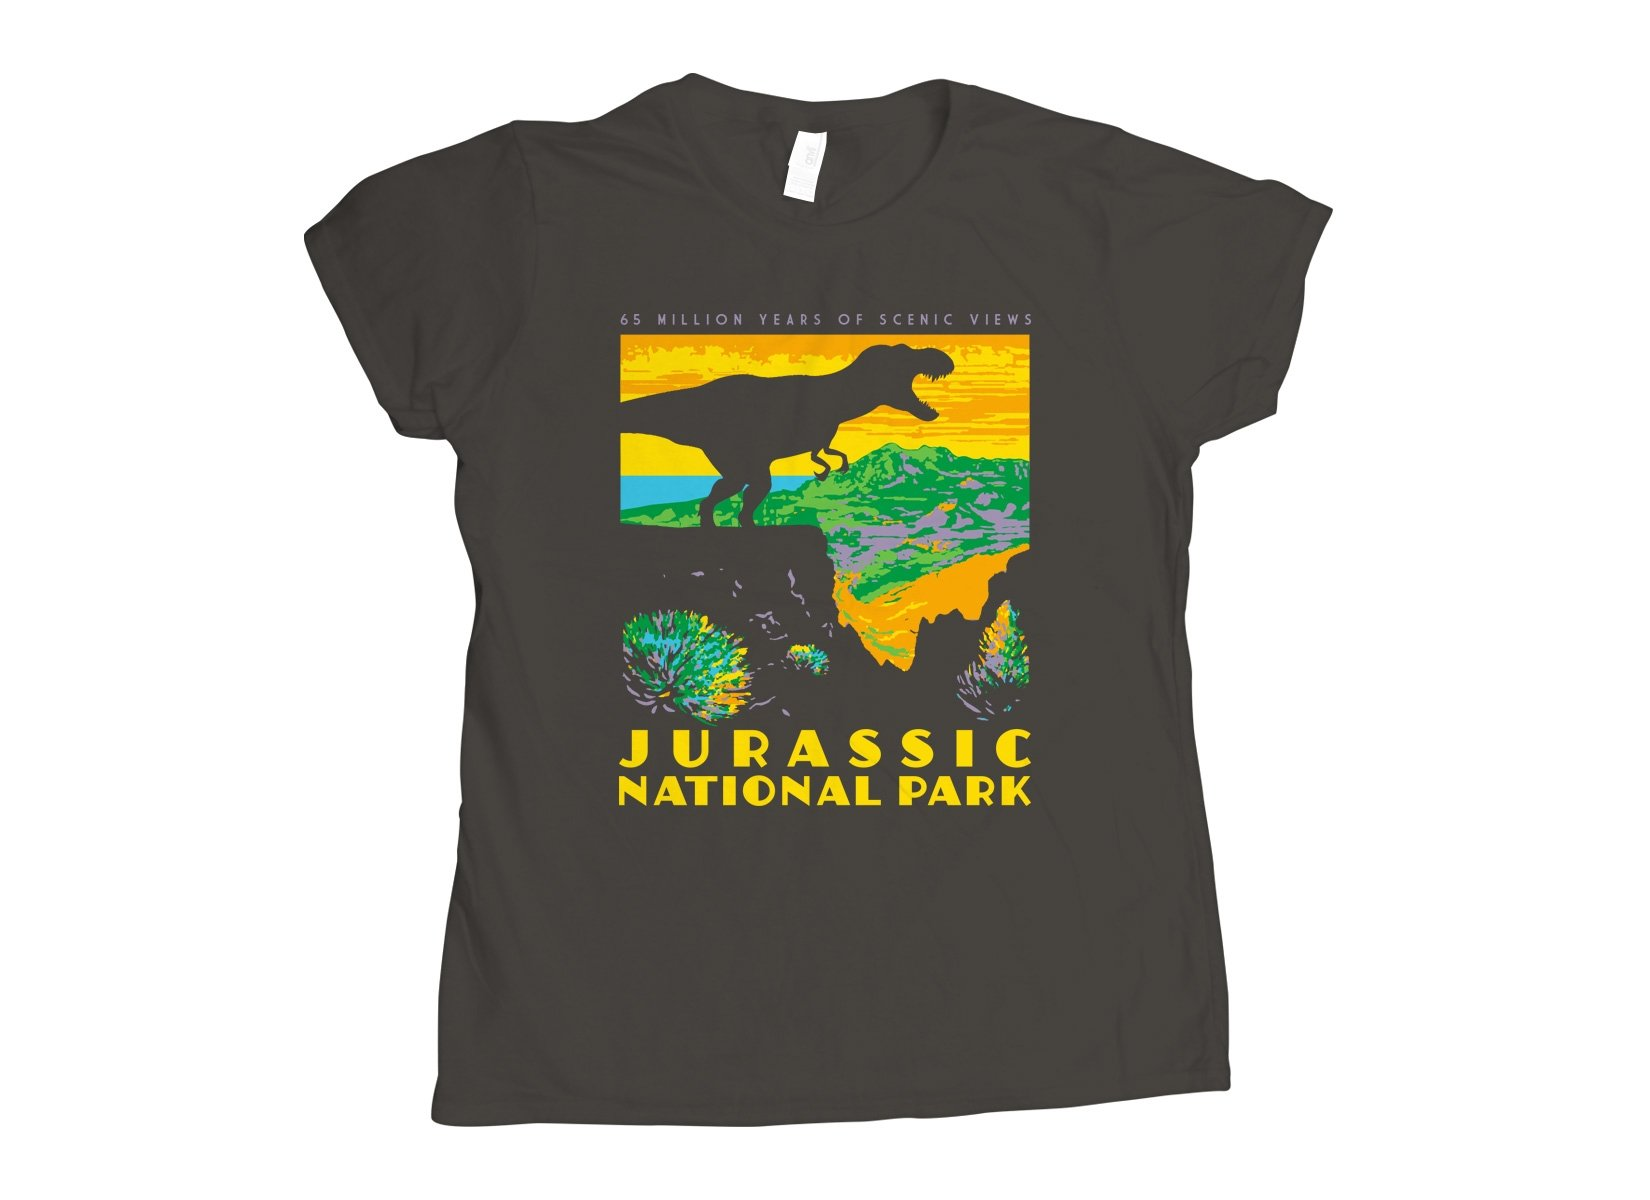 Jurassic National Park on Womens T-Shirt